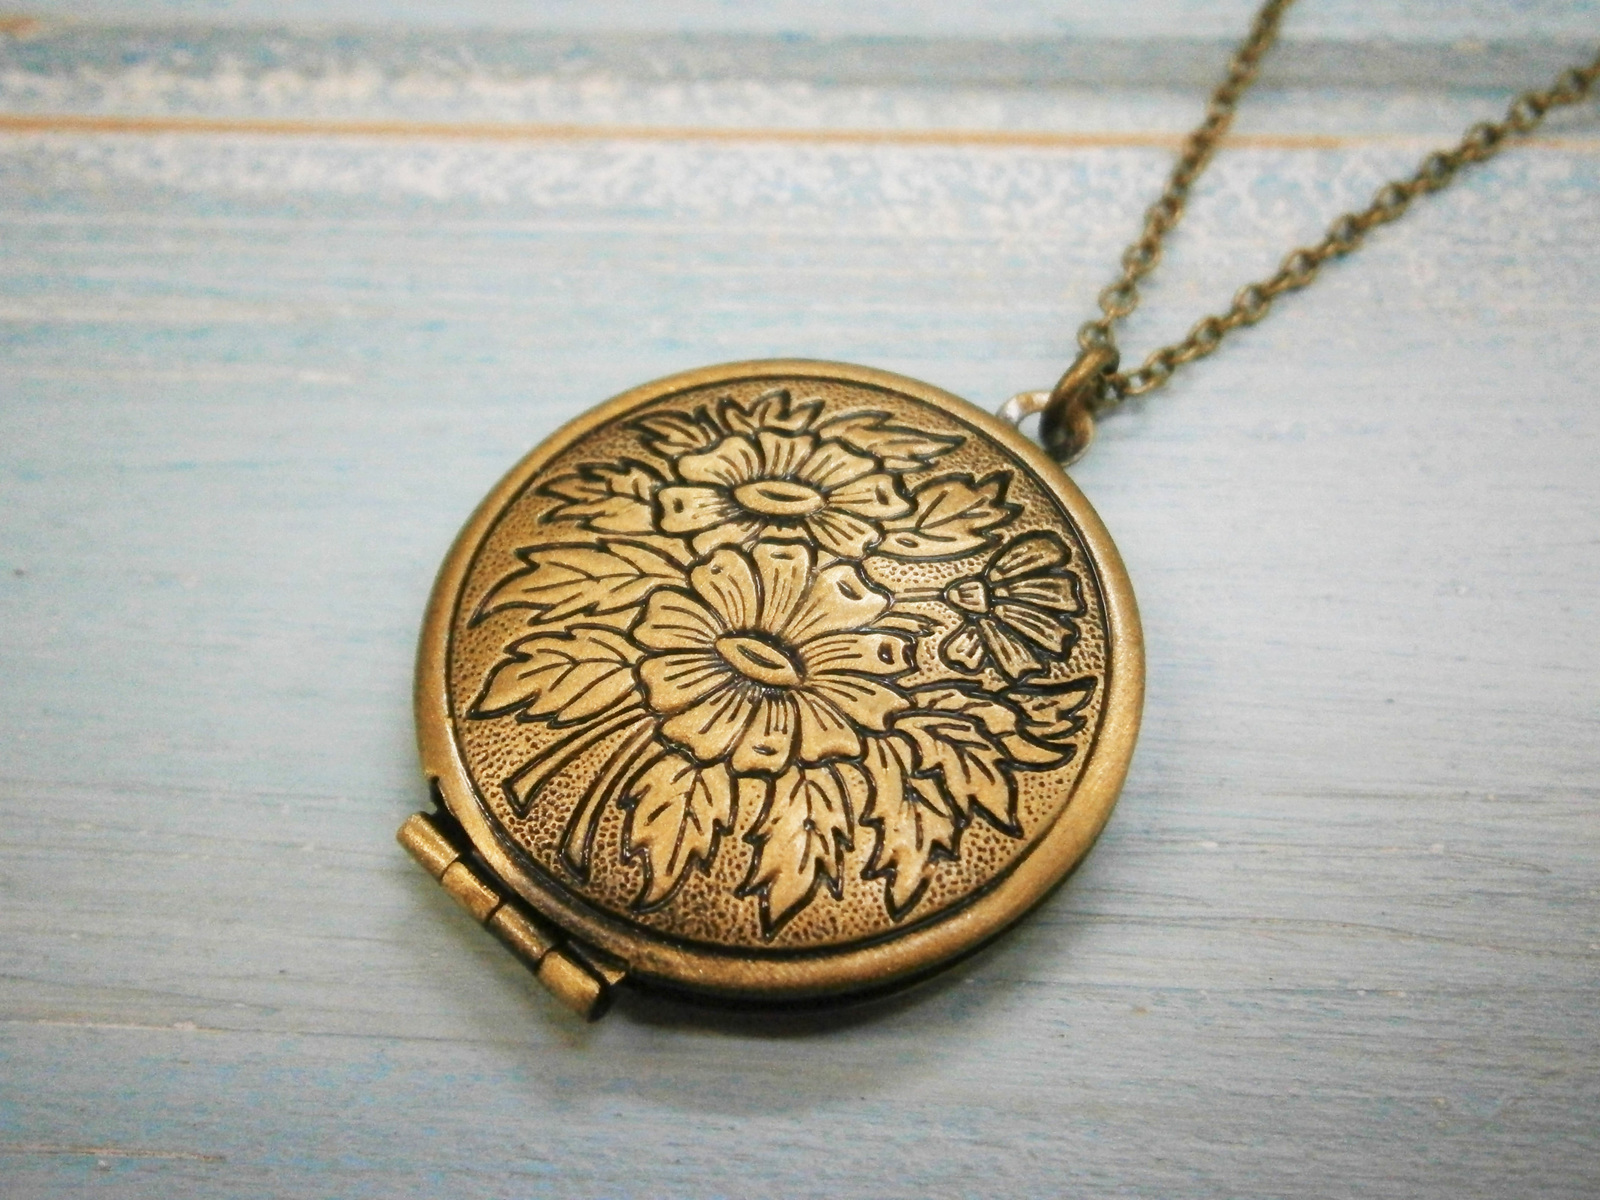 pads necklaces with wholesale product vintage gold open white antique diffuser aromatherapy style locket men pendant perfume oil necklace essential for lockets